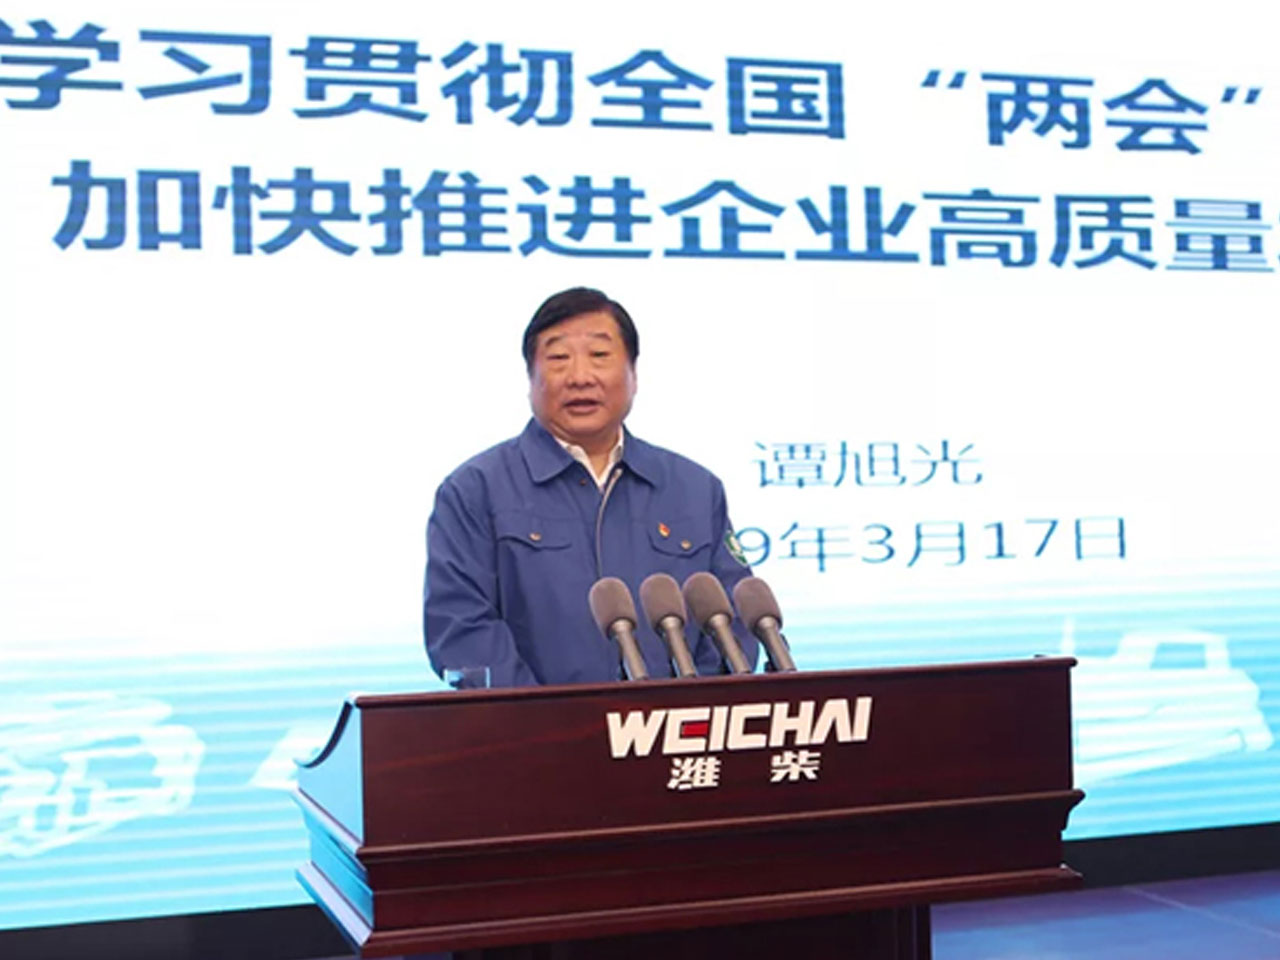 Weichai Group Learns and Implements the Spirit of the Two Sessions to Speed Up R&D Innovation Again